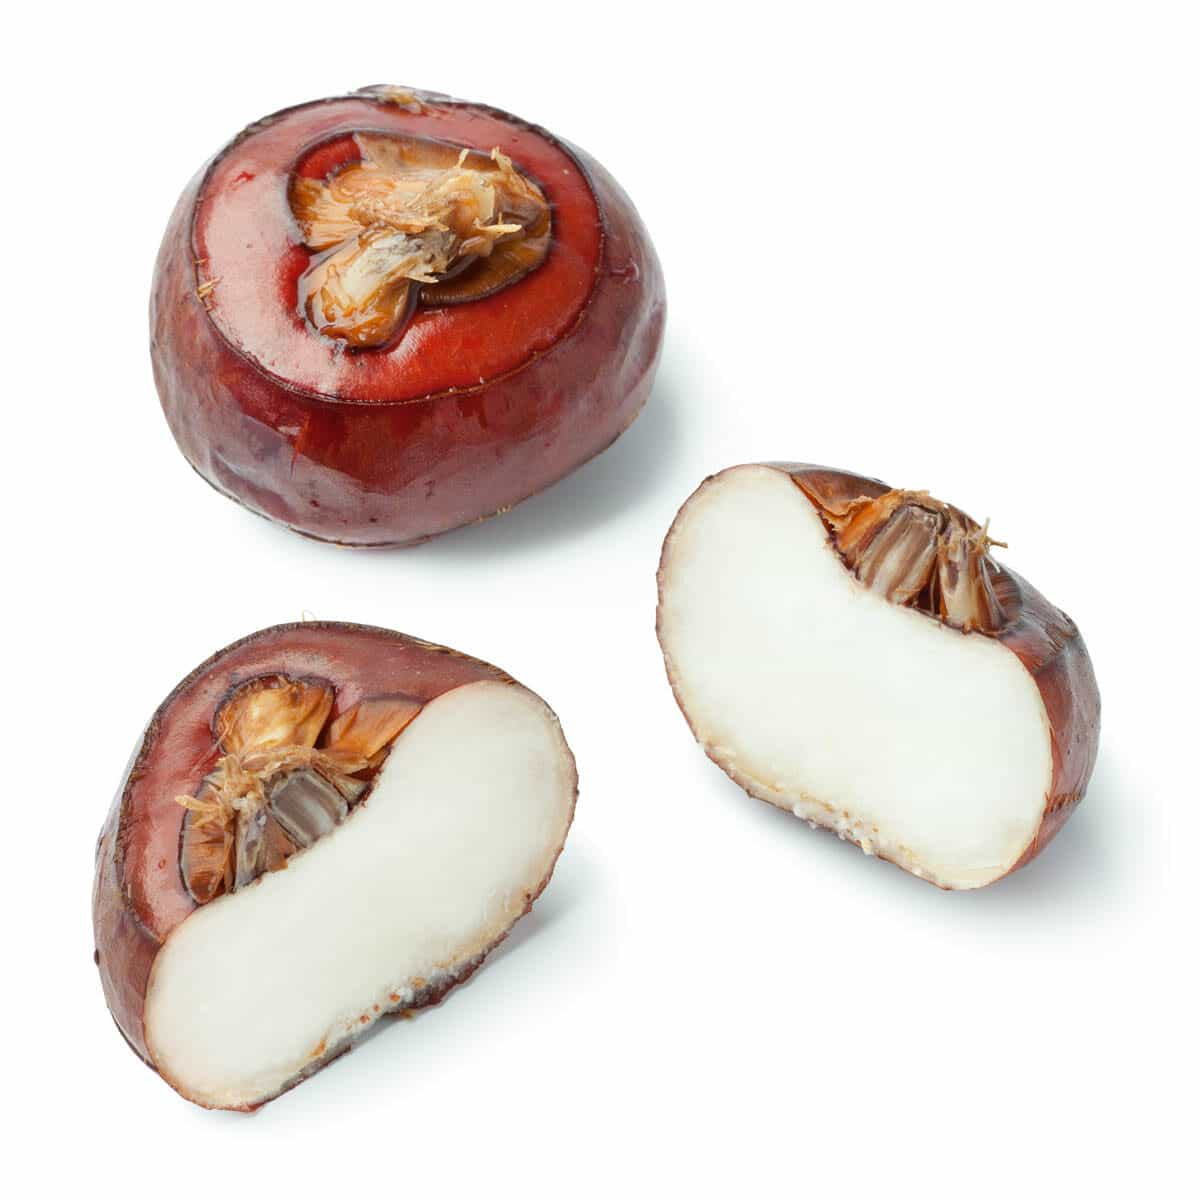 2 water chestnuts, one whole, one is cut in half.